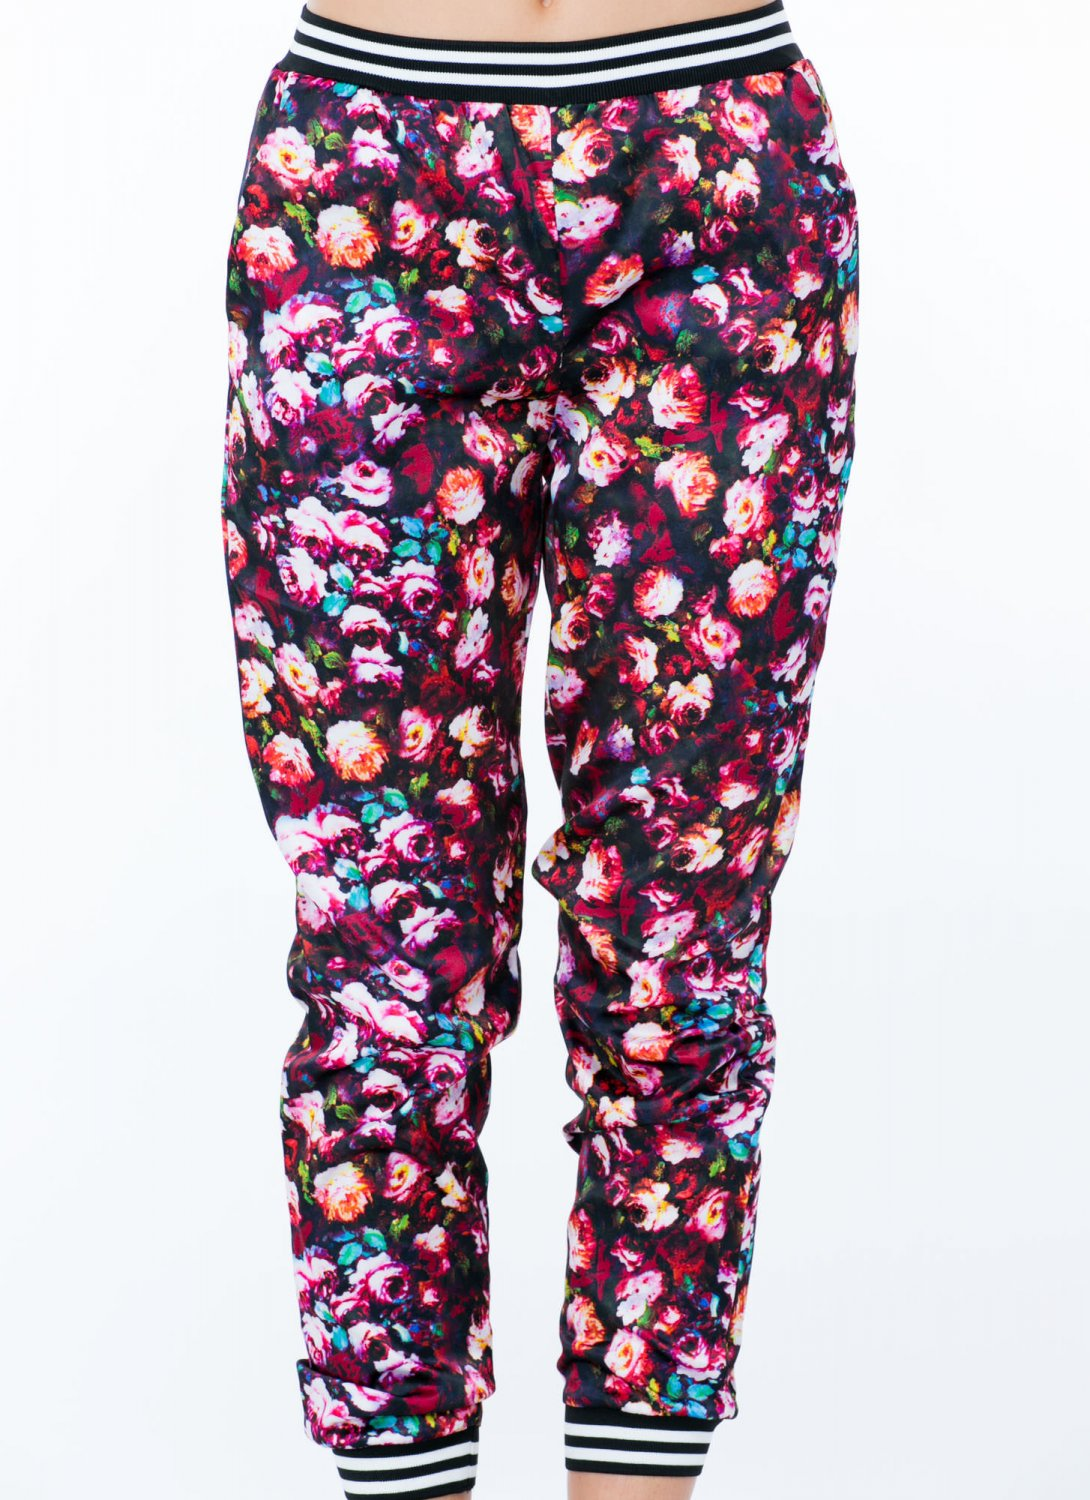 Popular HOME  WOMENS SHOP BY BRANDS  ESSENTIALS  FLORAL PRINT JOGGER